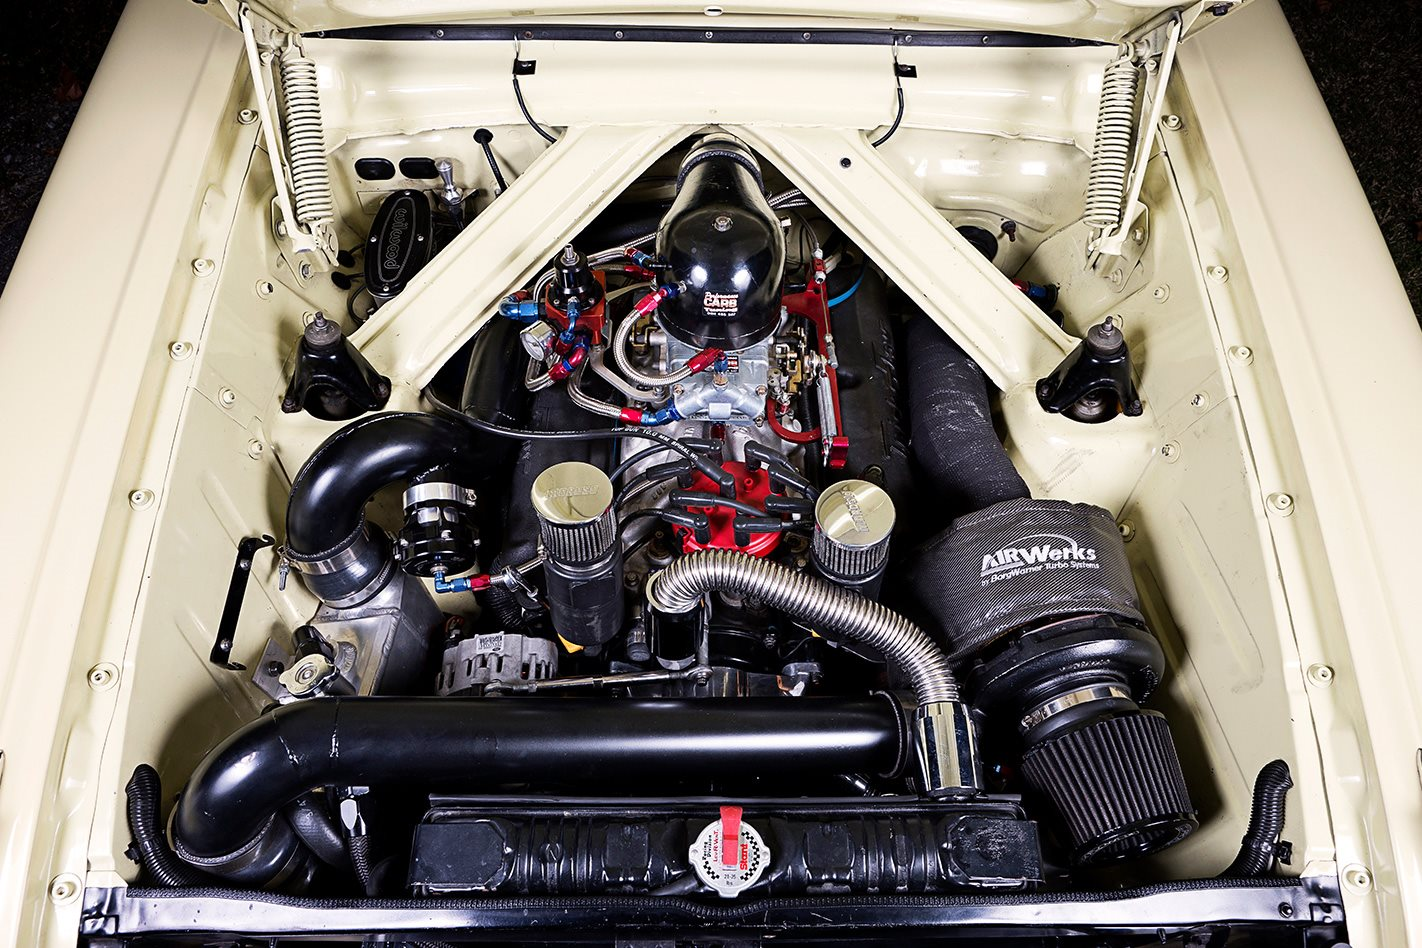 1963 FORD XL FUTURA Windsor engine